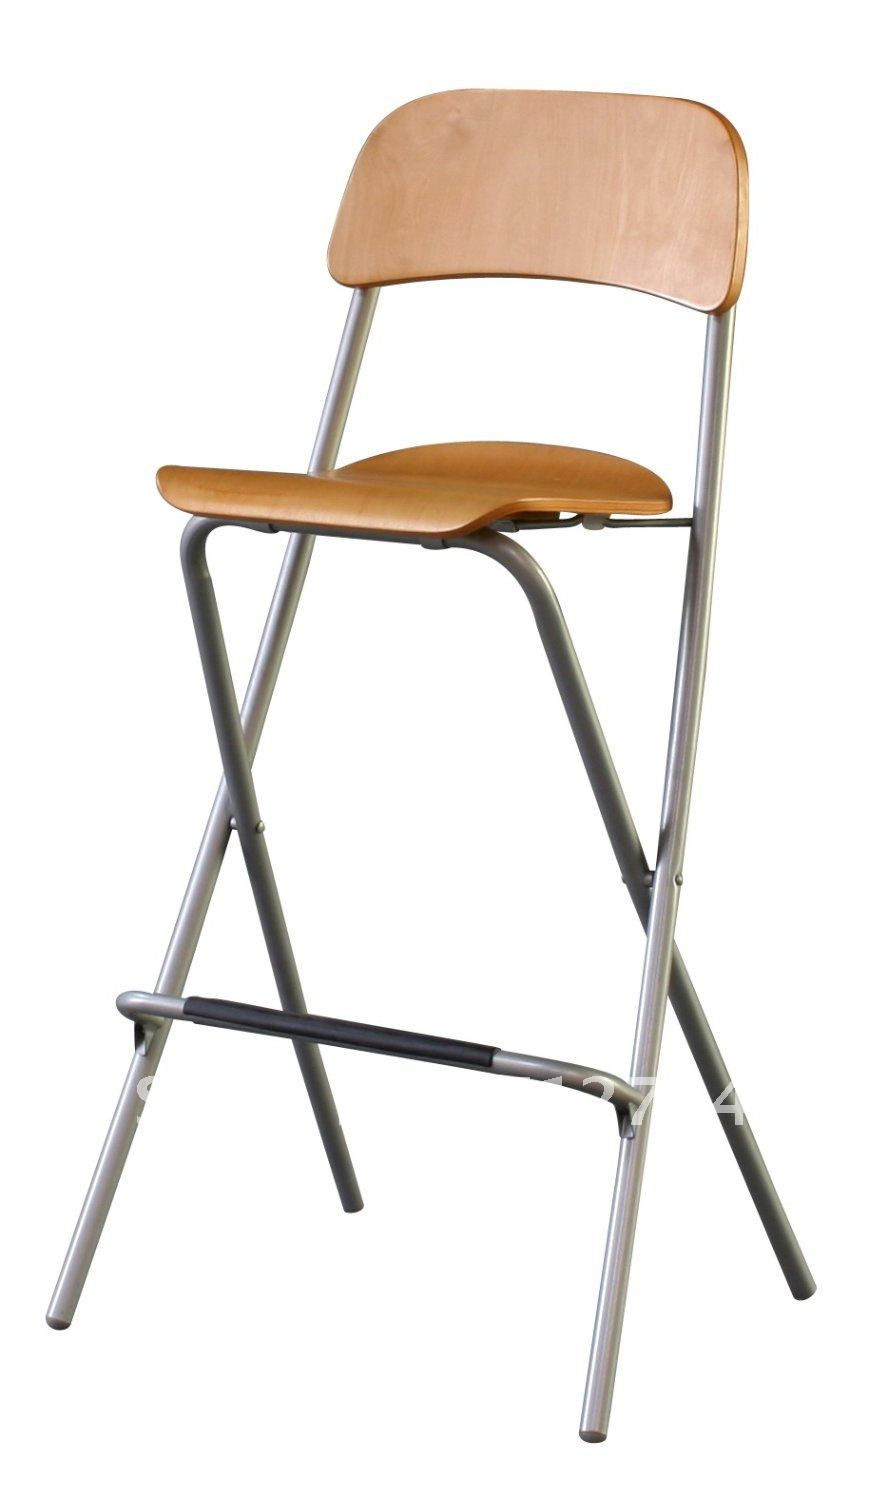 Superbe Bar Stools Counter Height Folding Chairs Bar Stools Crate And In  Measurements 970 X 970 Folding Chairs For Counter Height Table   What Is  More, It Comes In